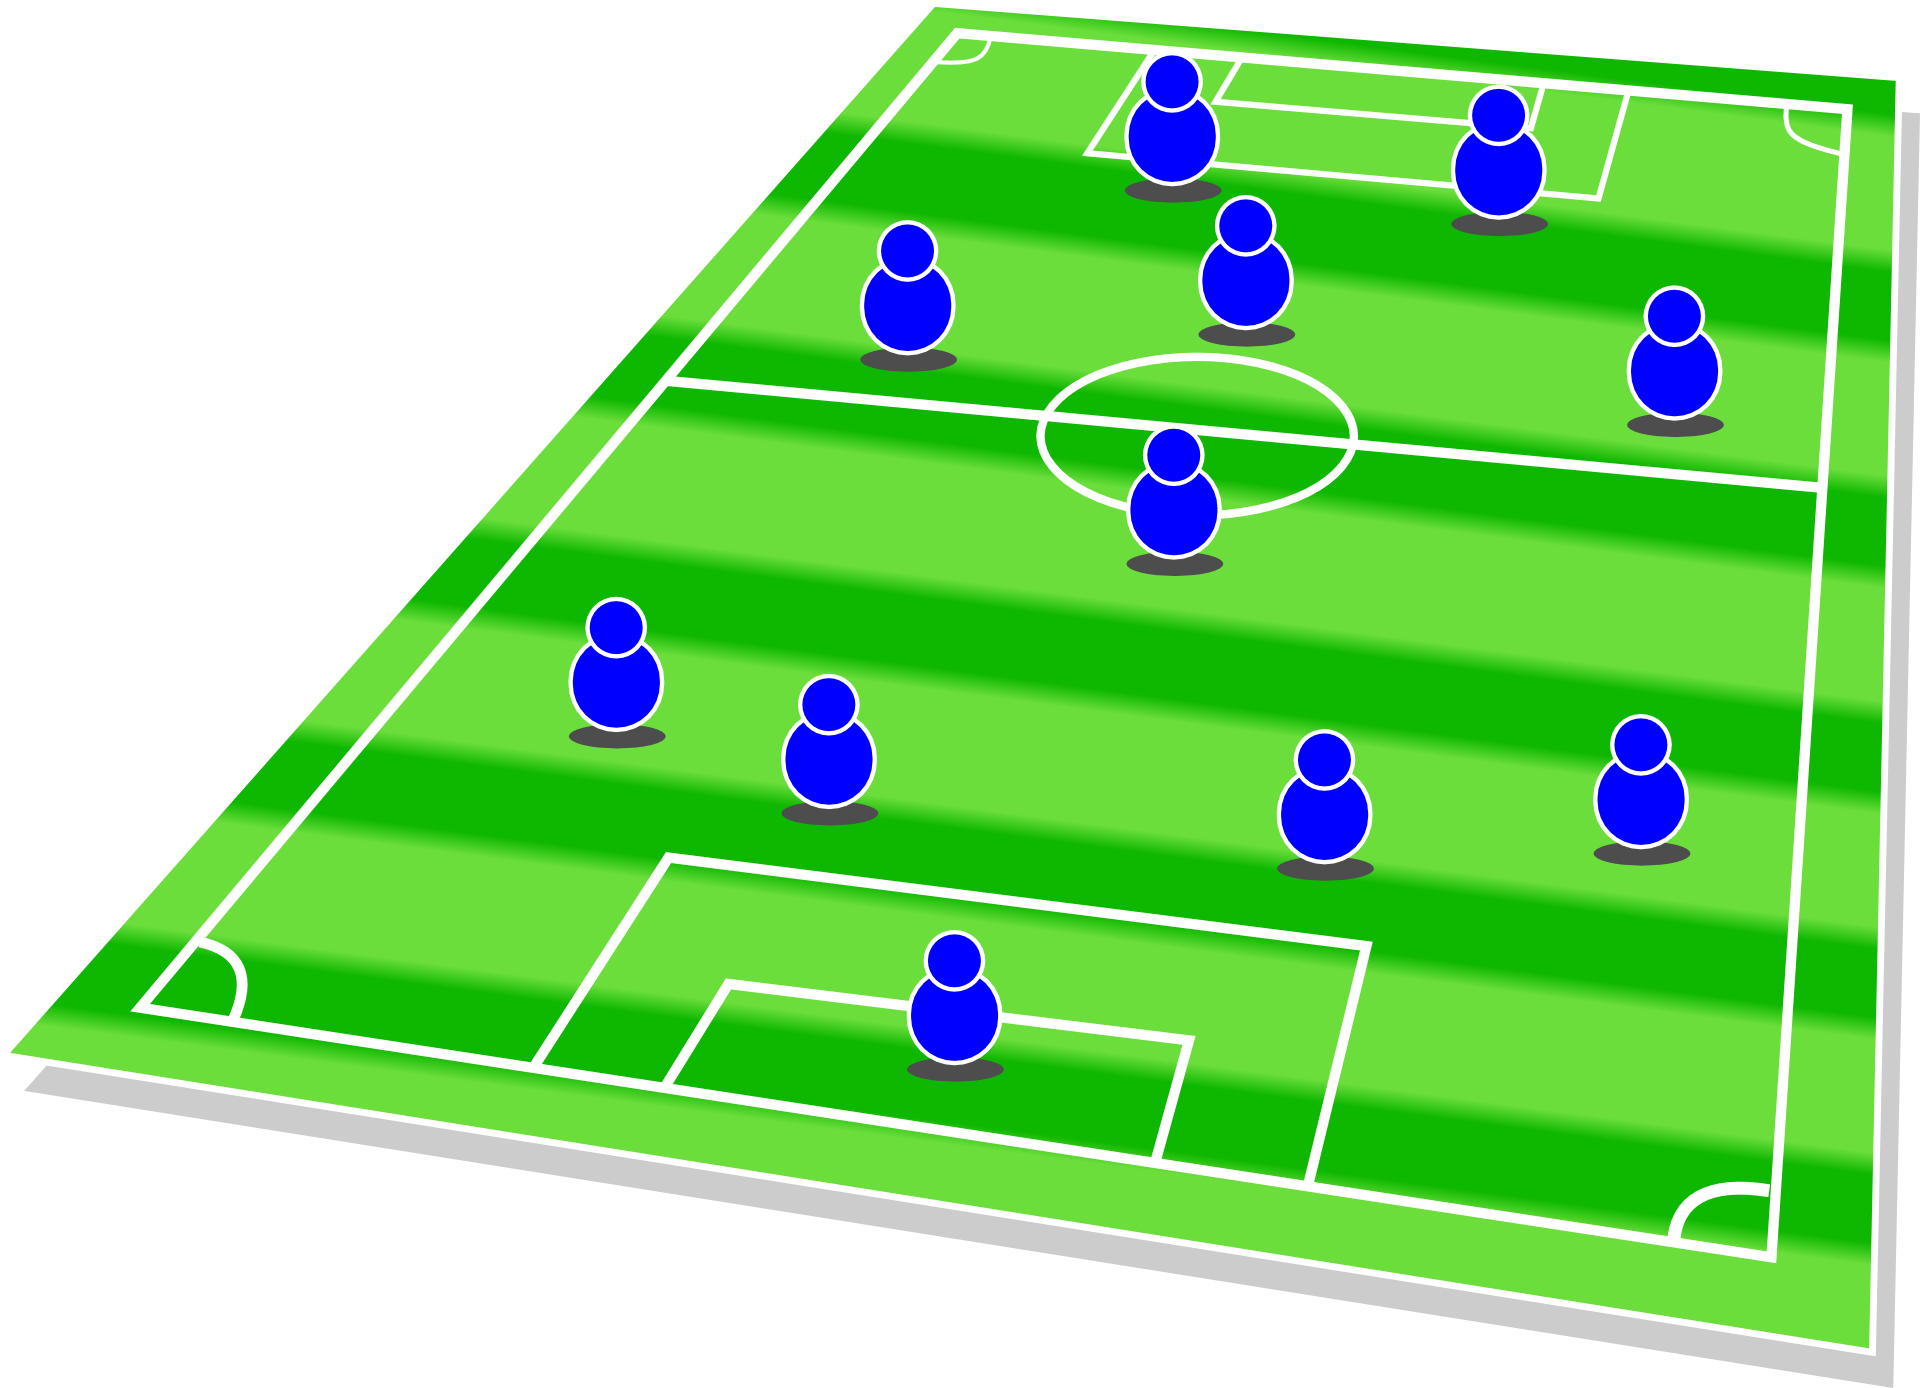 play football -football field-picture